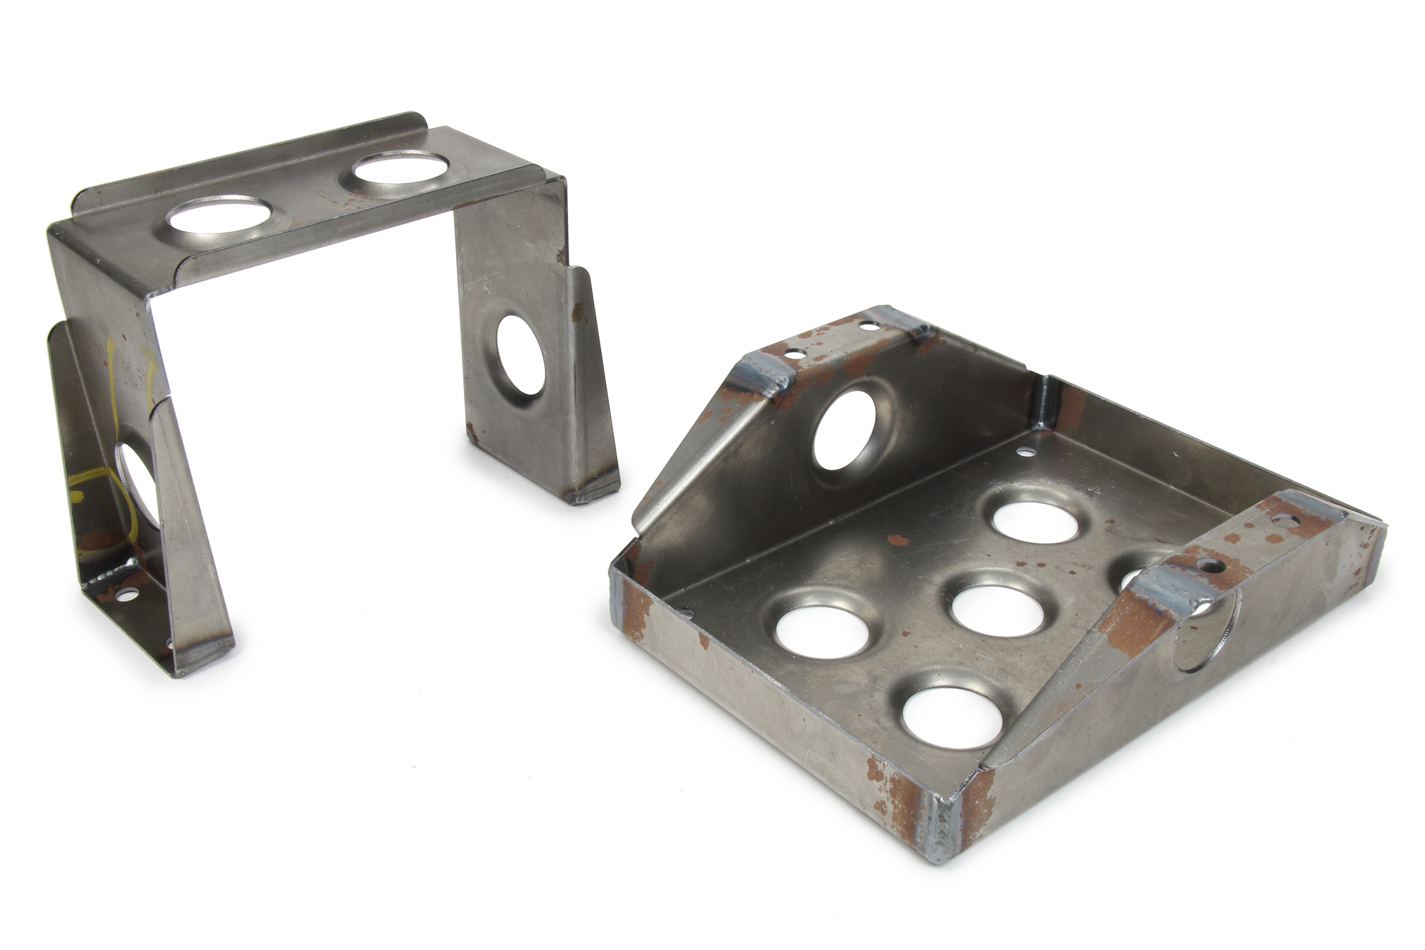 Upright Battery Box for TP1200